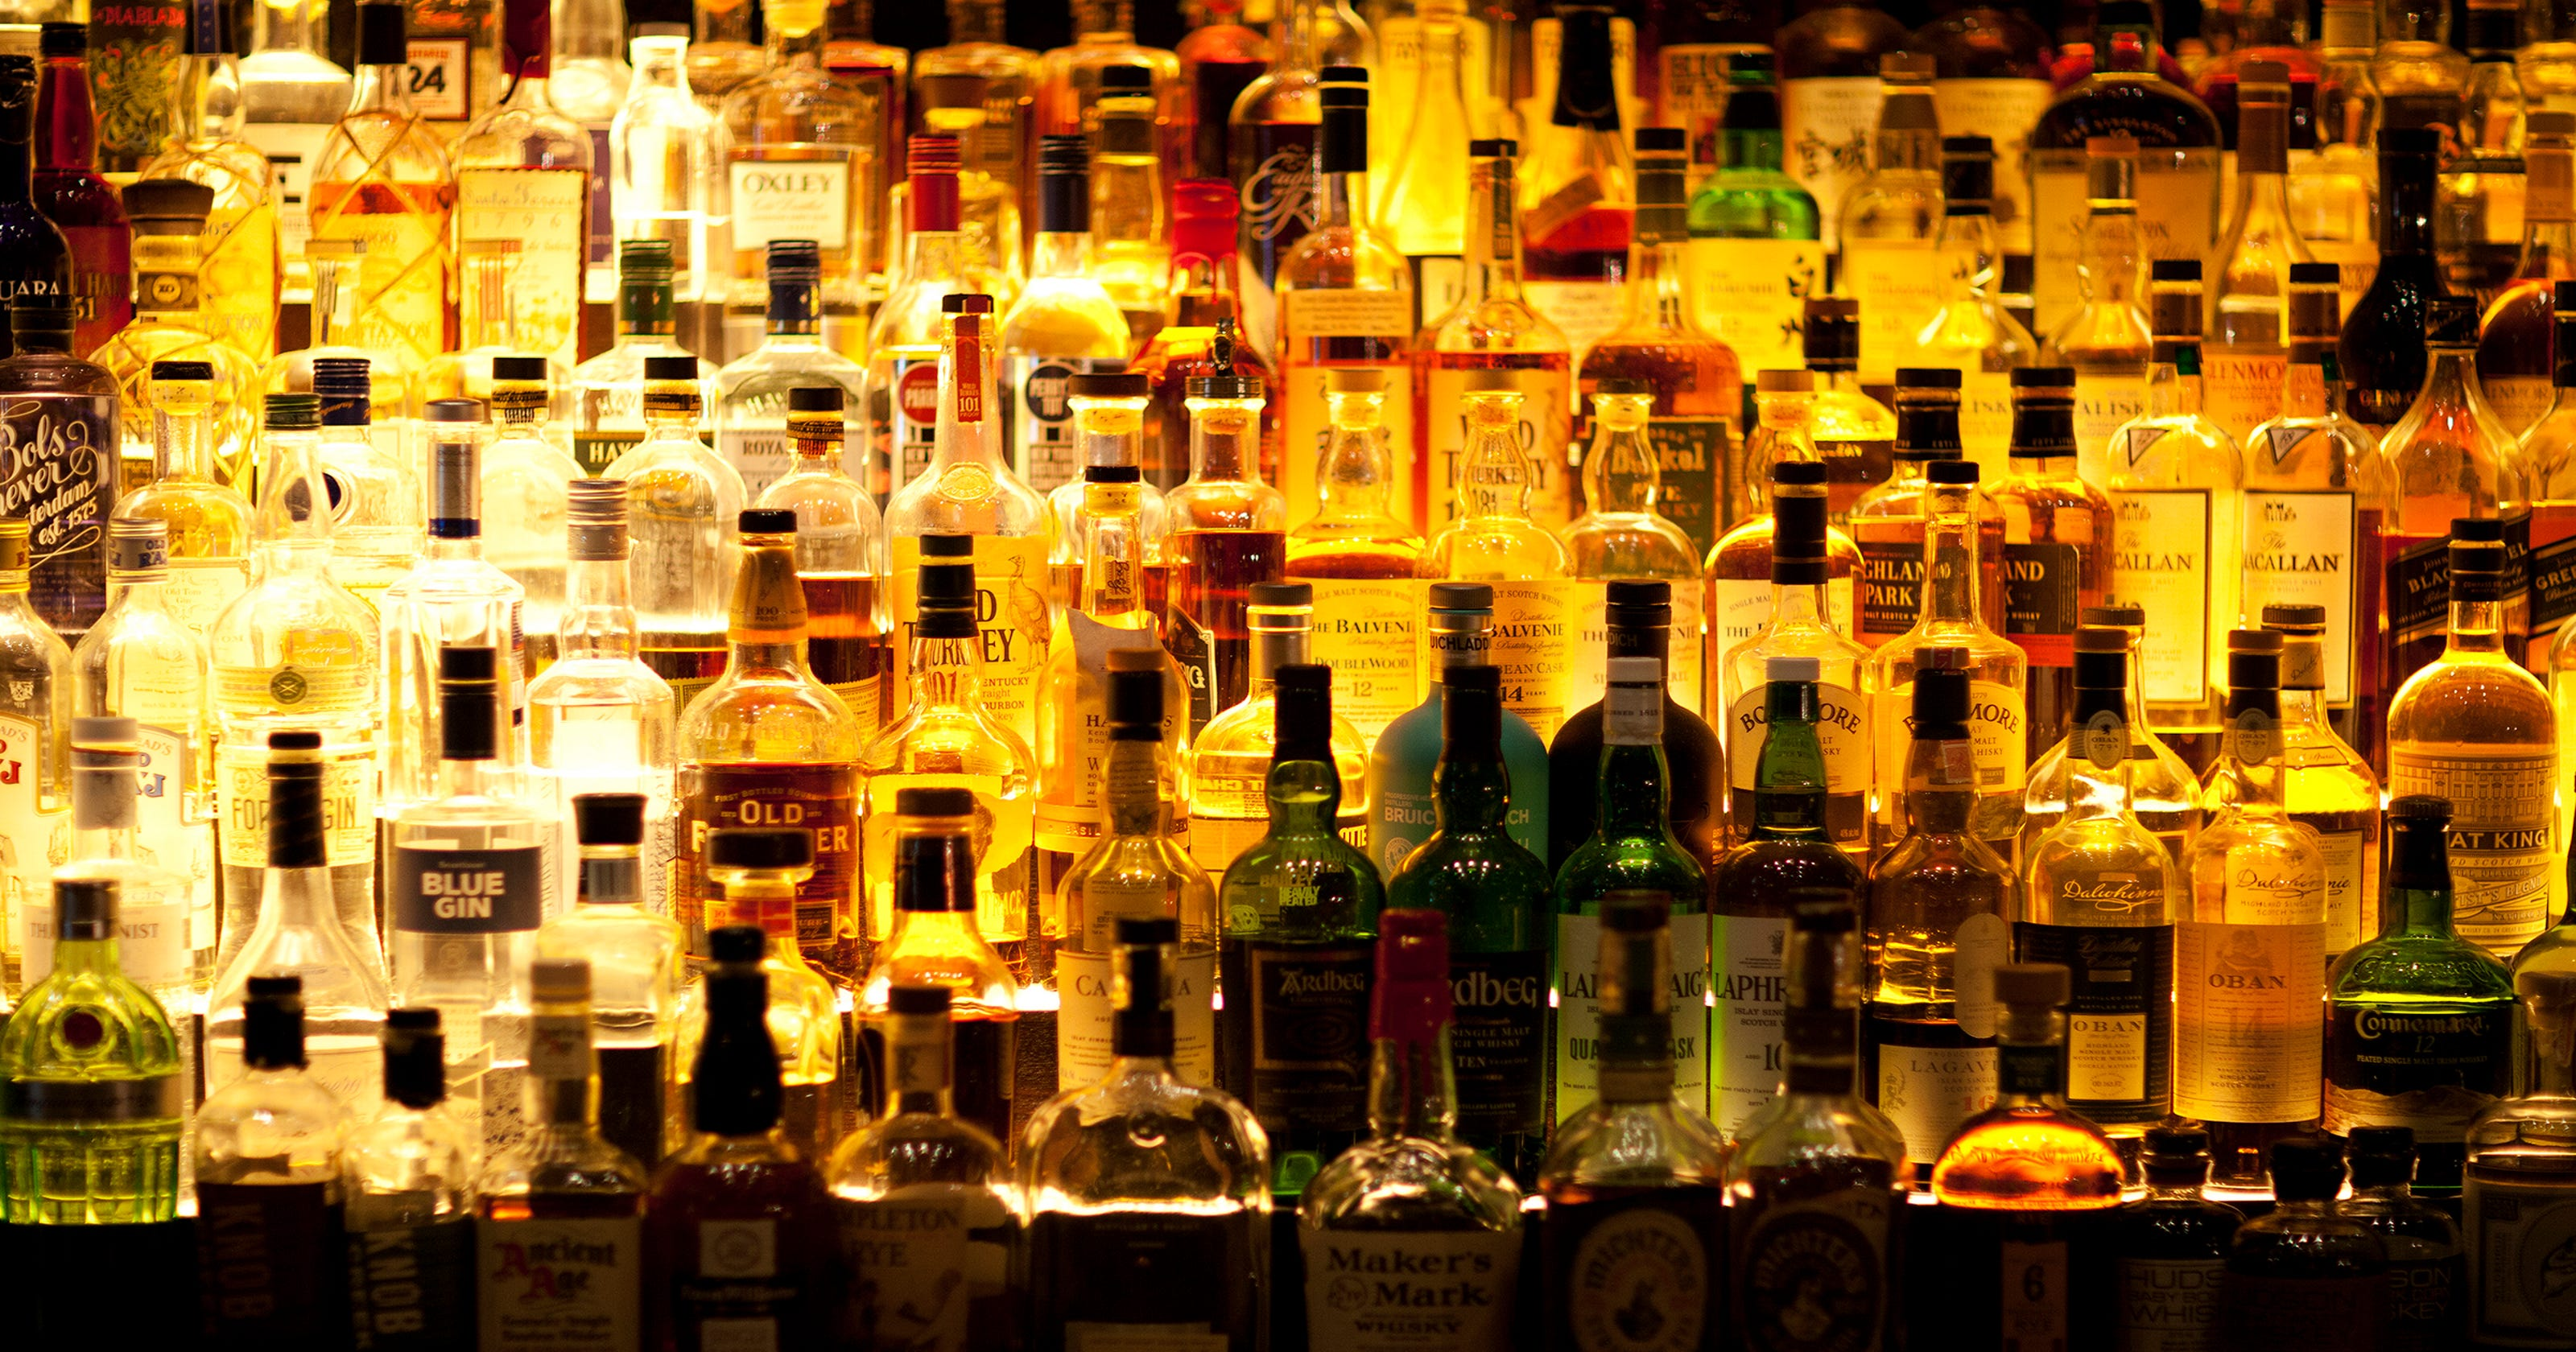 Bars face liquor law violations in York and Adams counties